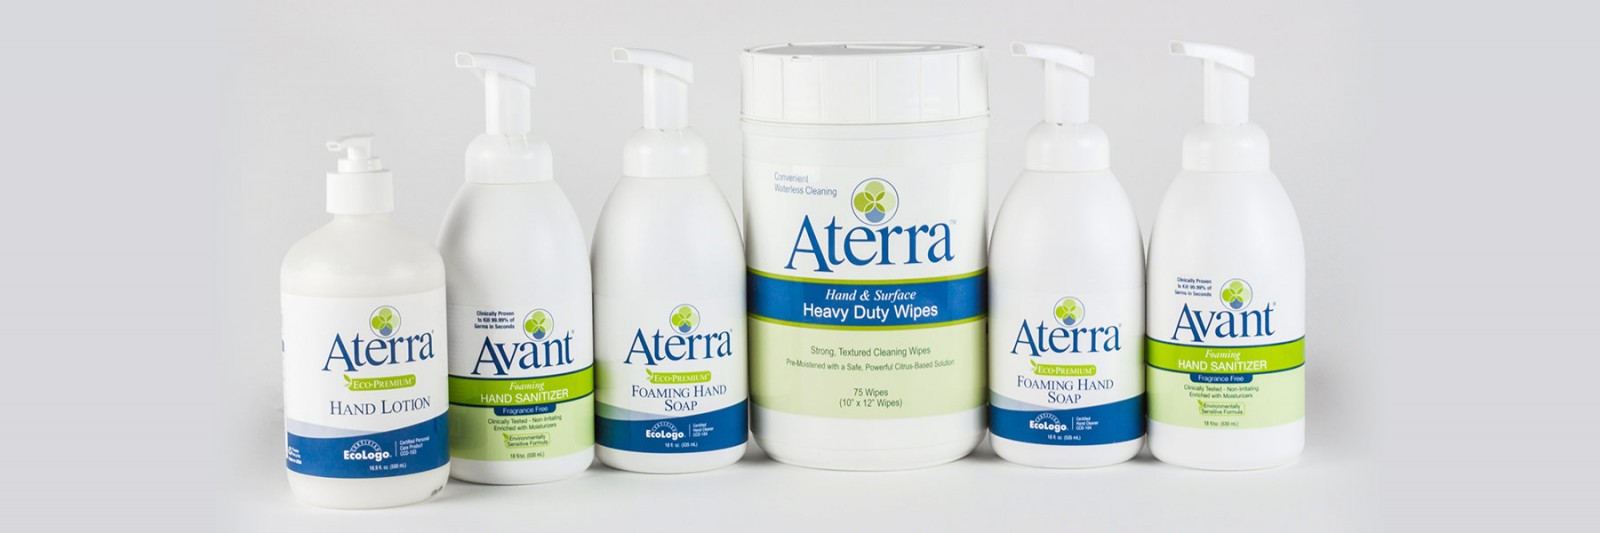 Avant hand sanitizer and Aterra hand soap and lotion